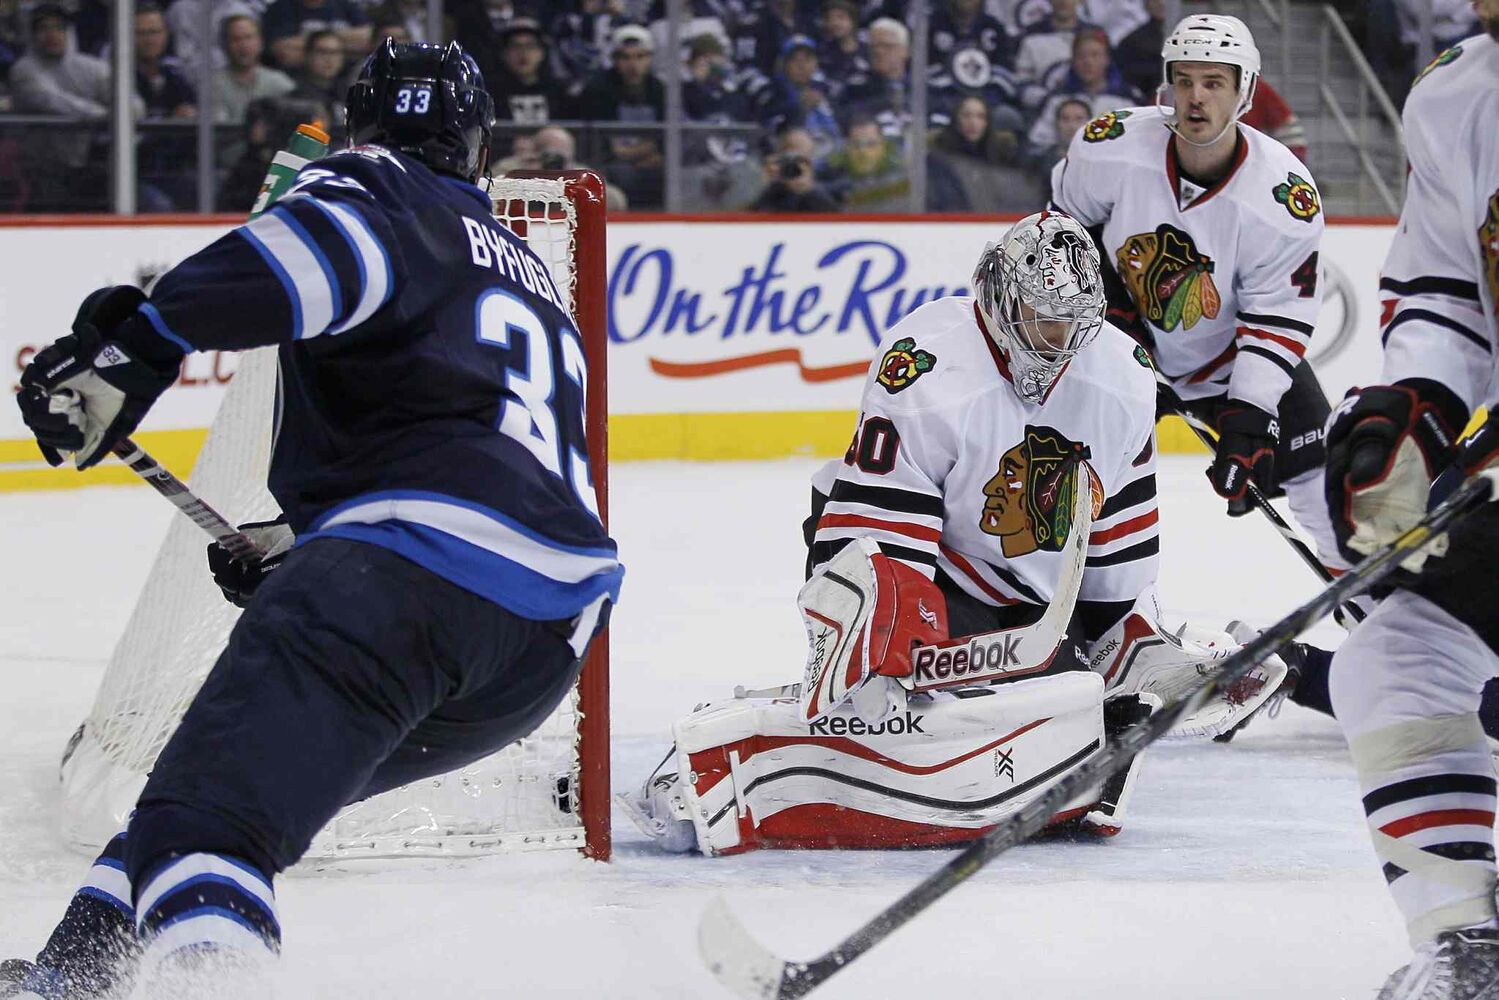 Winnipeg Jets defenceman Dustin Byfuglien gets a shot past Chicago Blackhawks goaltender Corey Crawford (50) for a goal during the second period.